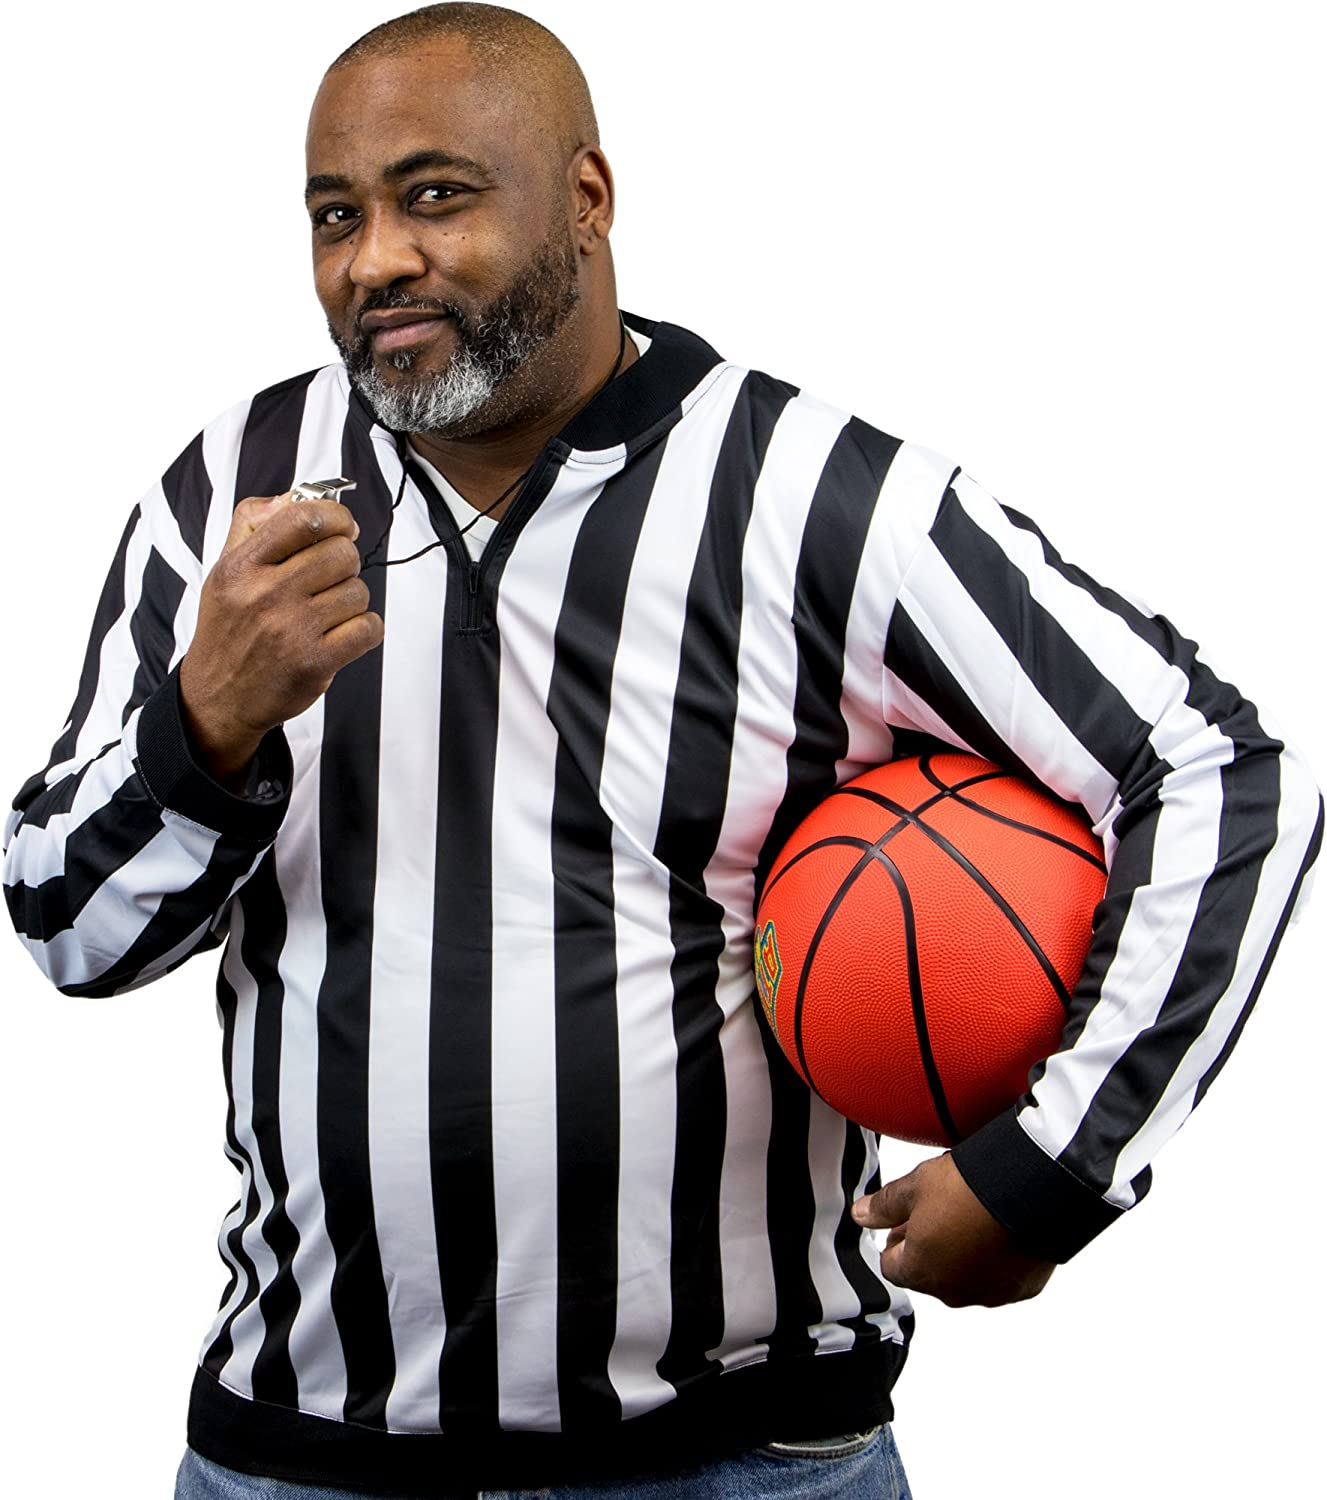 Crown Sporting Goods Men's Official Striped Referee Shirt/Umpire Long Sleeve Jersey Uniform: Sports & Outdoors